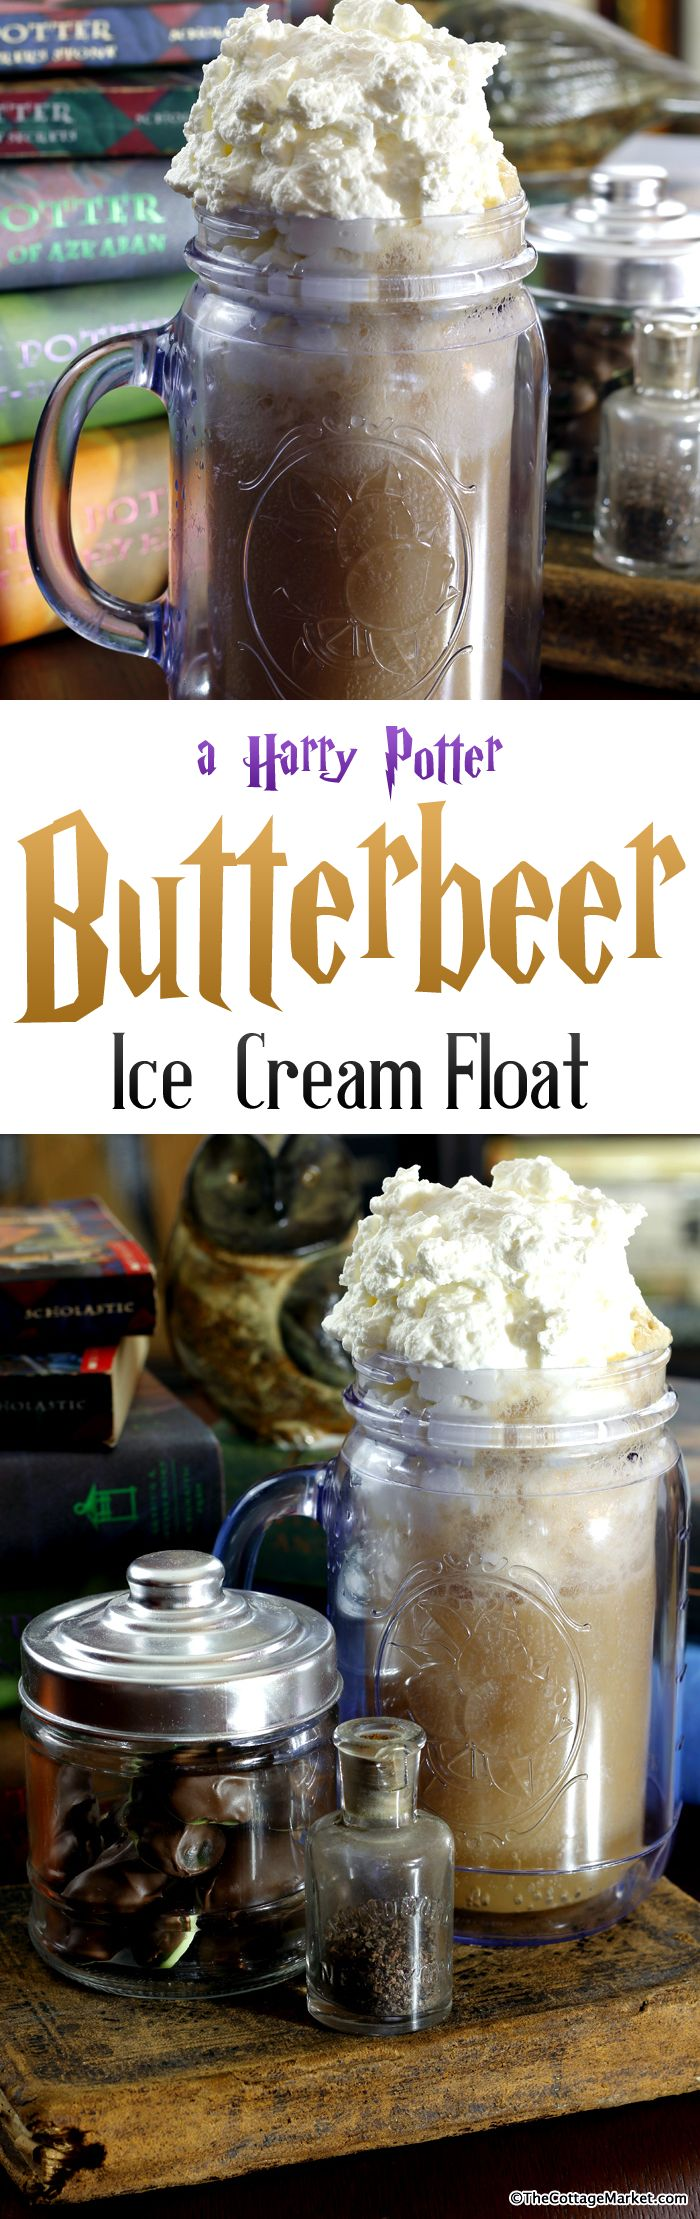 Harry Potter's Homemade Butterbeer Float - The Cottage Market a very Popular Pin all year round